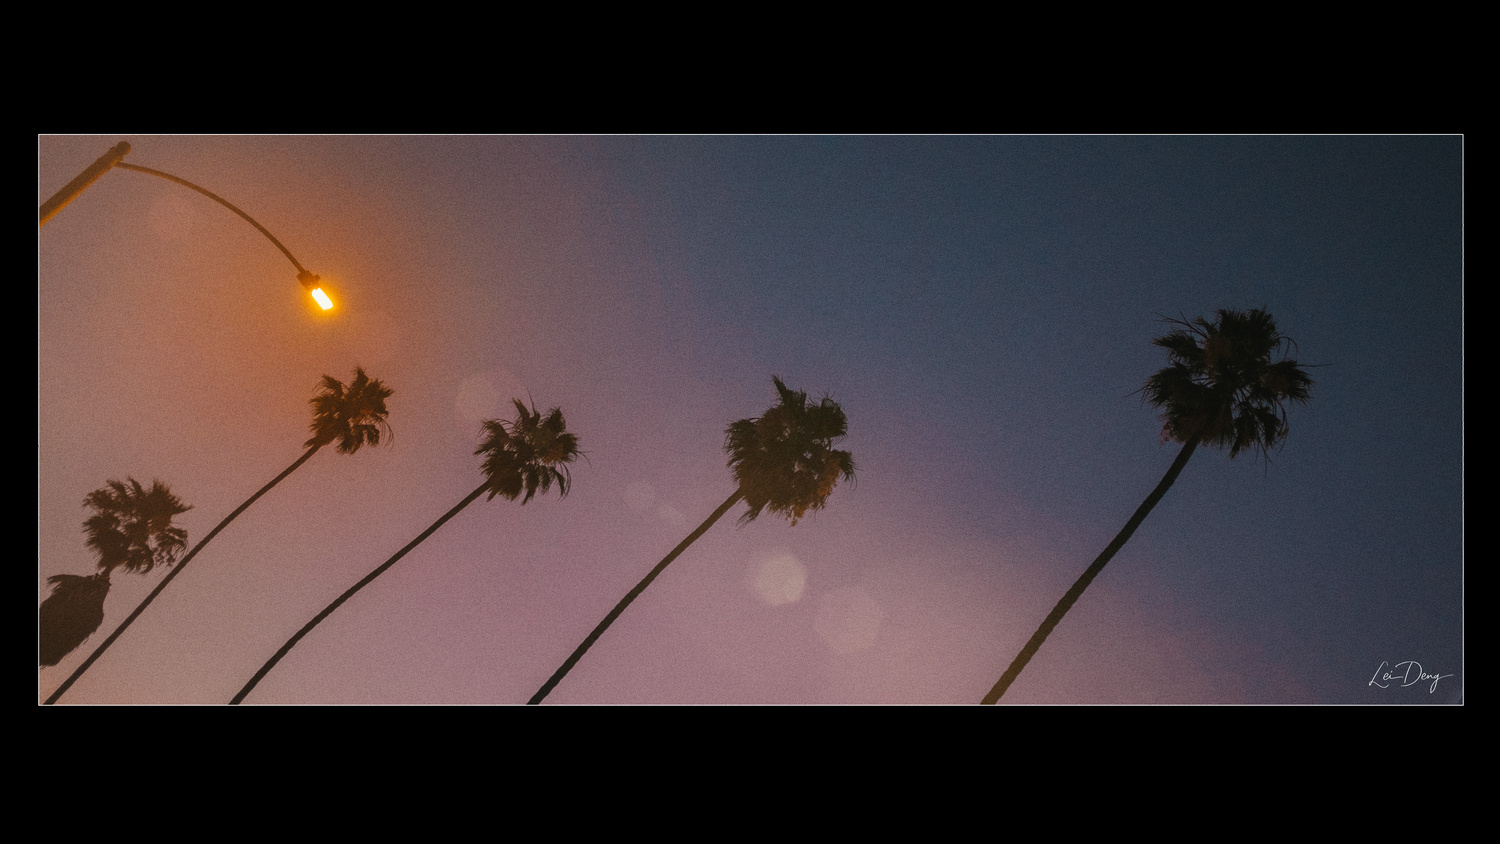 LA Palms by Lei Deng